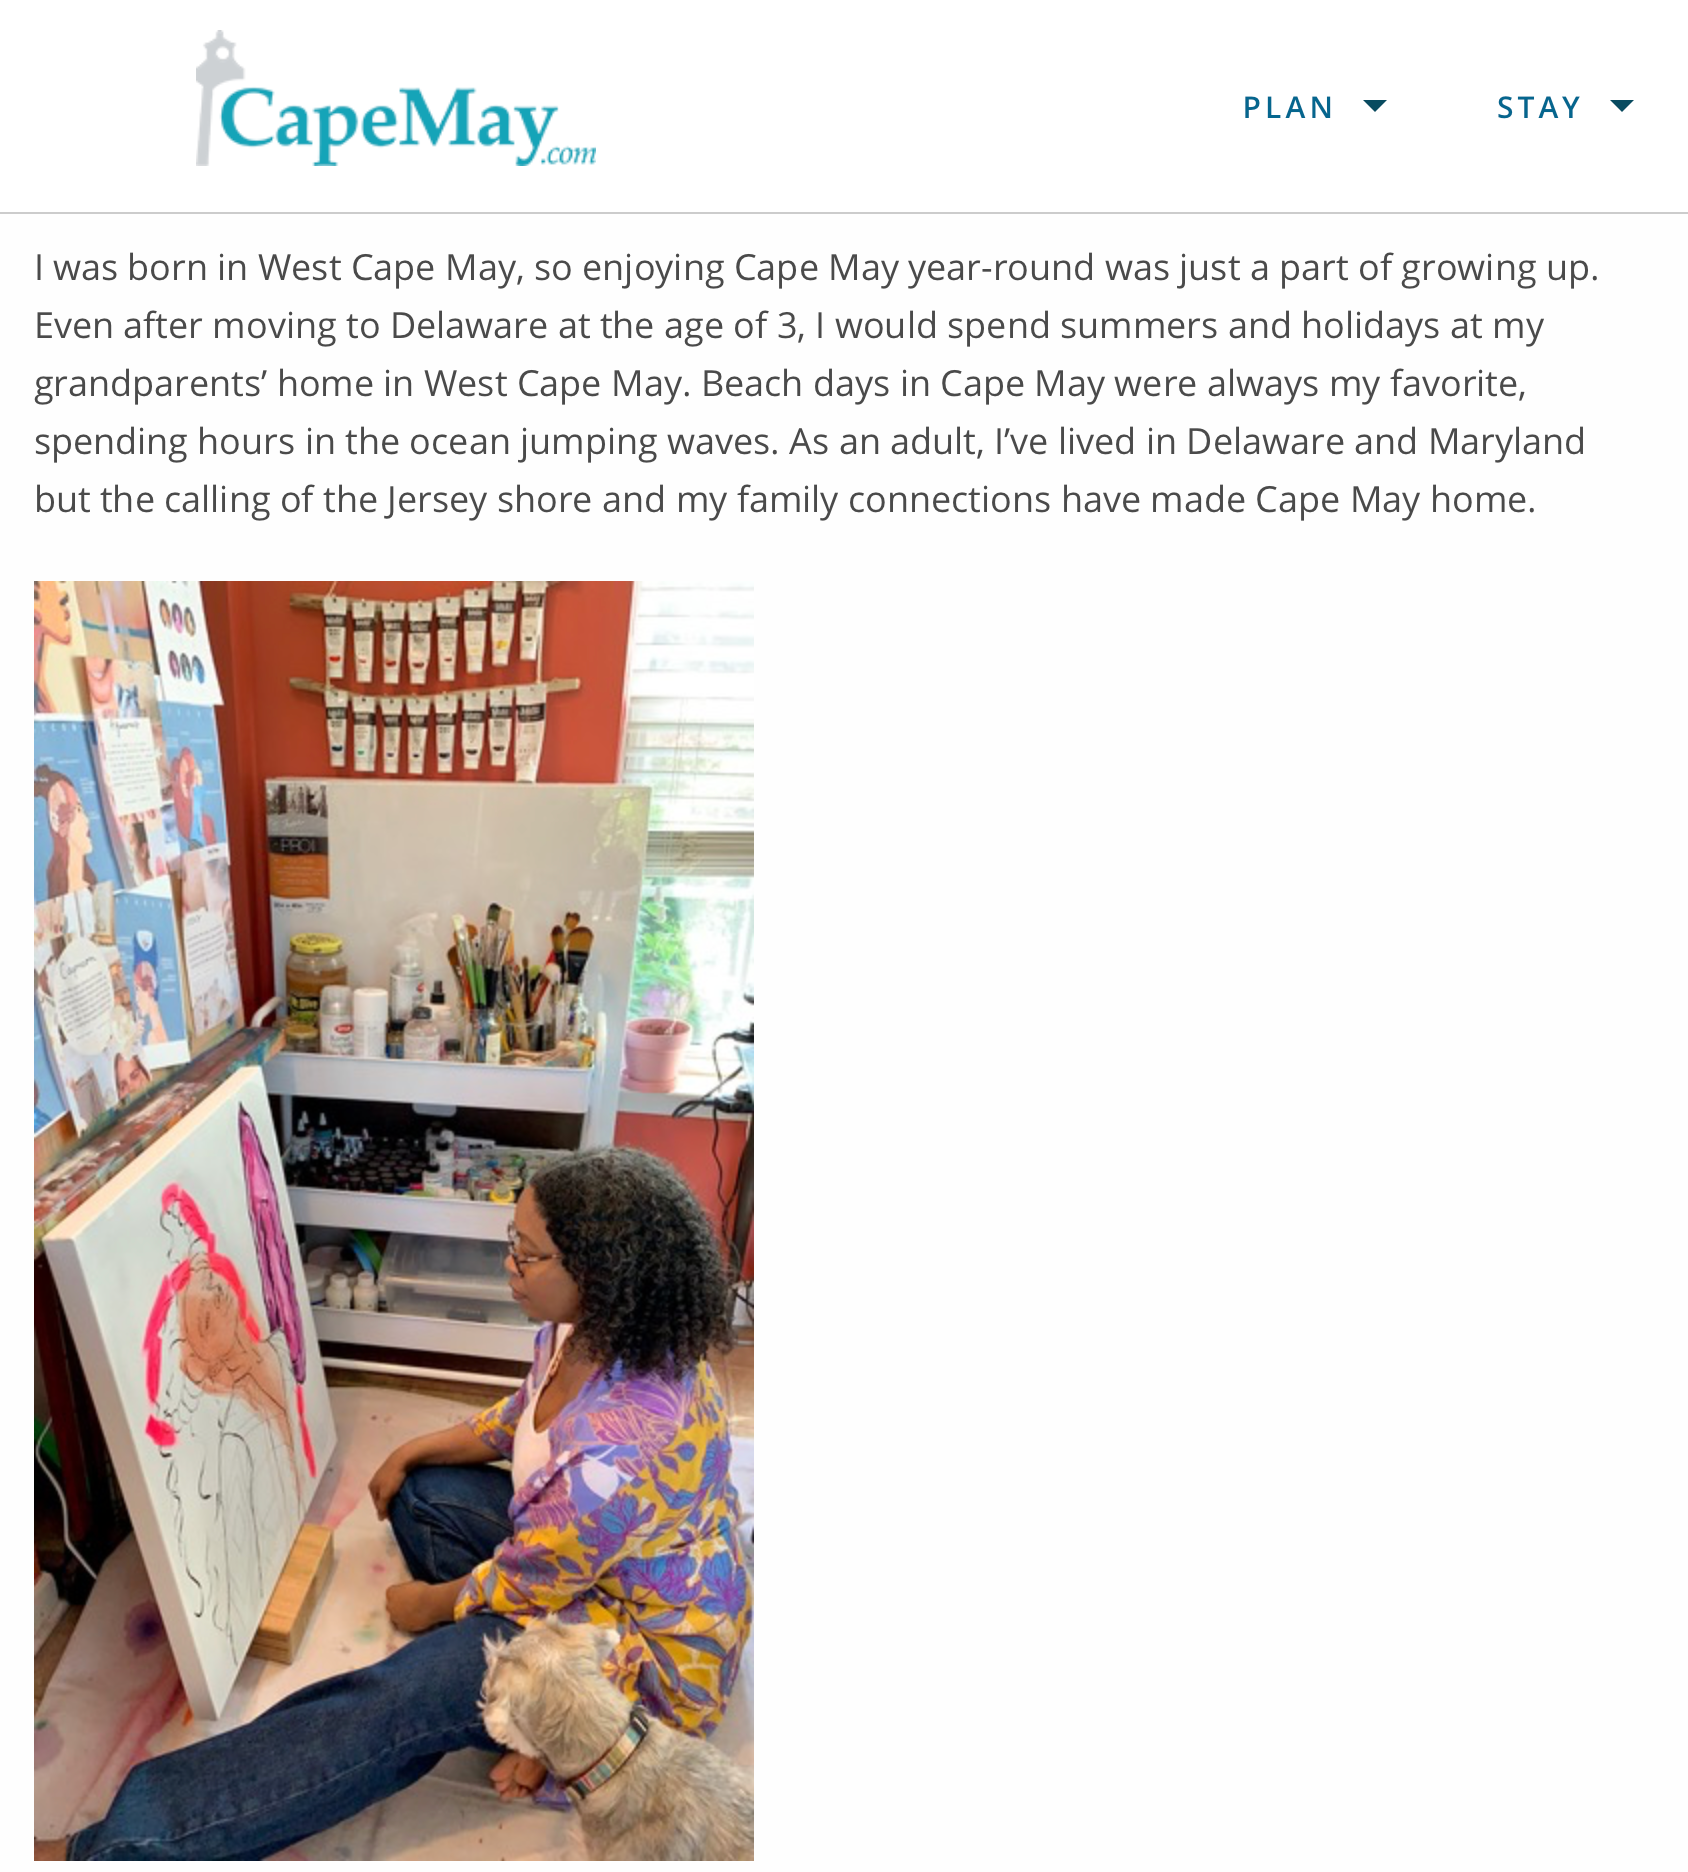 Artist Chanelle Rene featured in CapeMay.com Blog